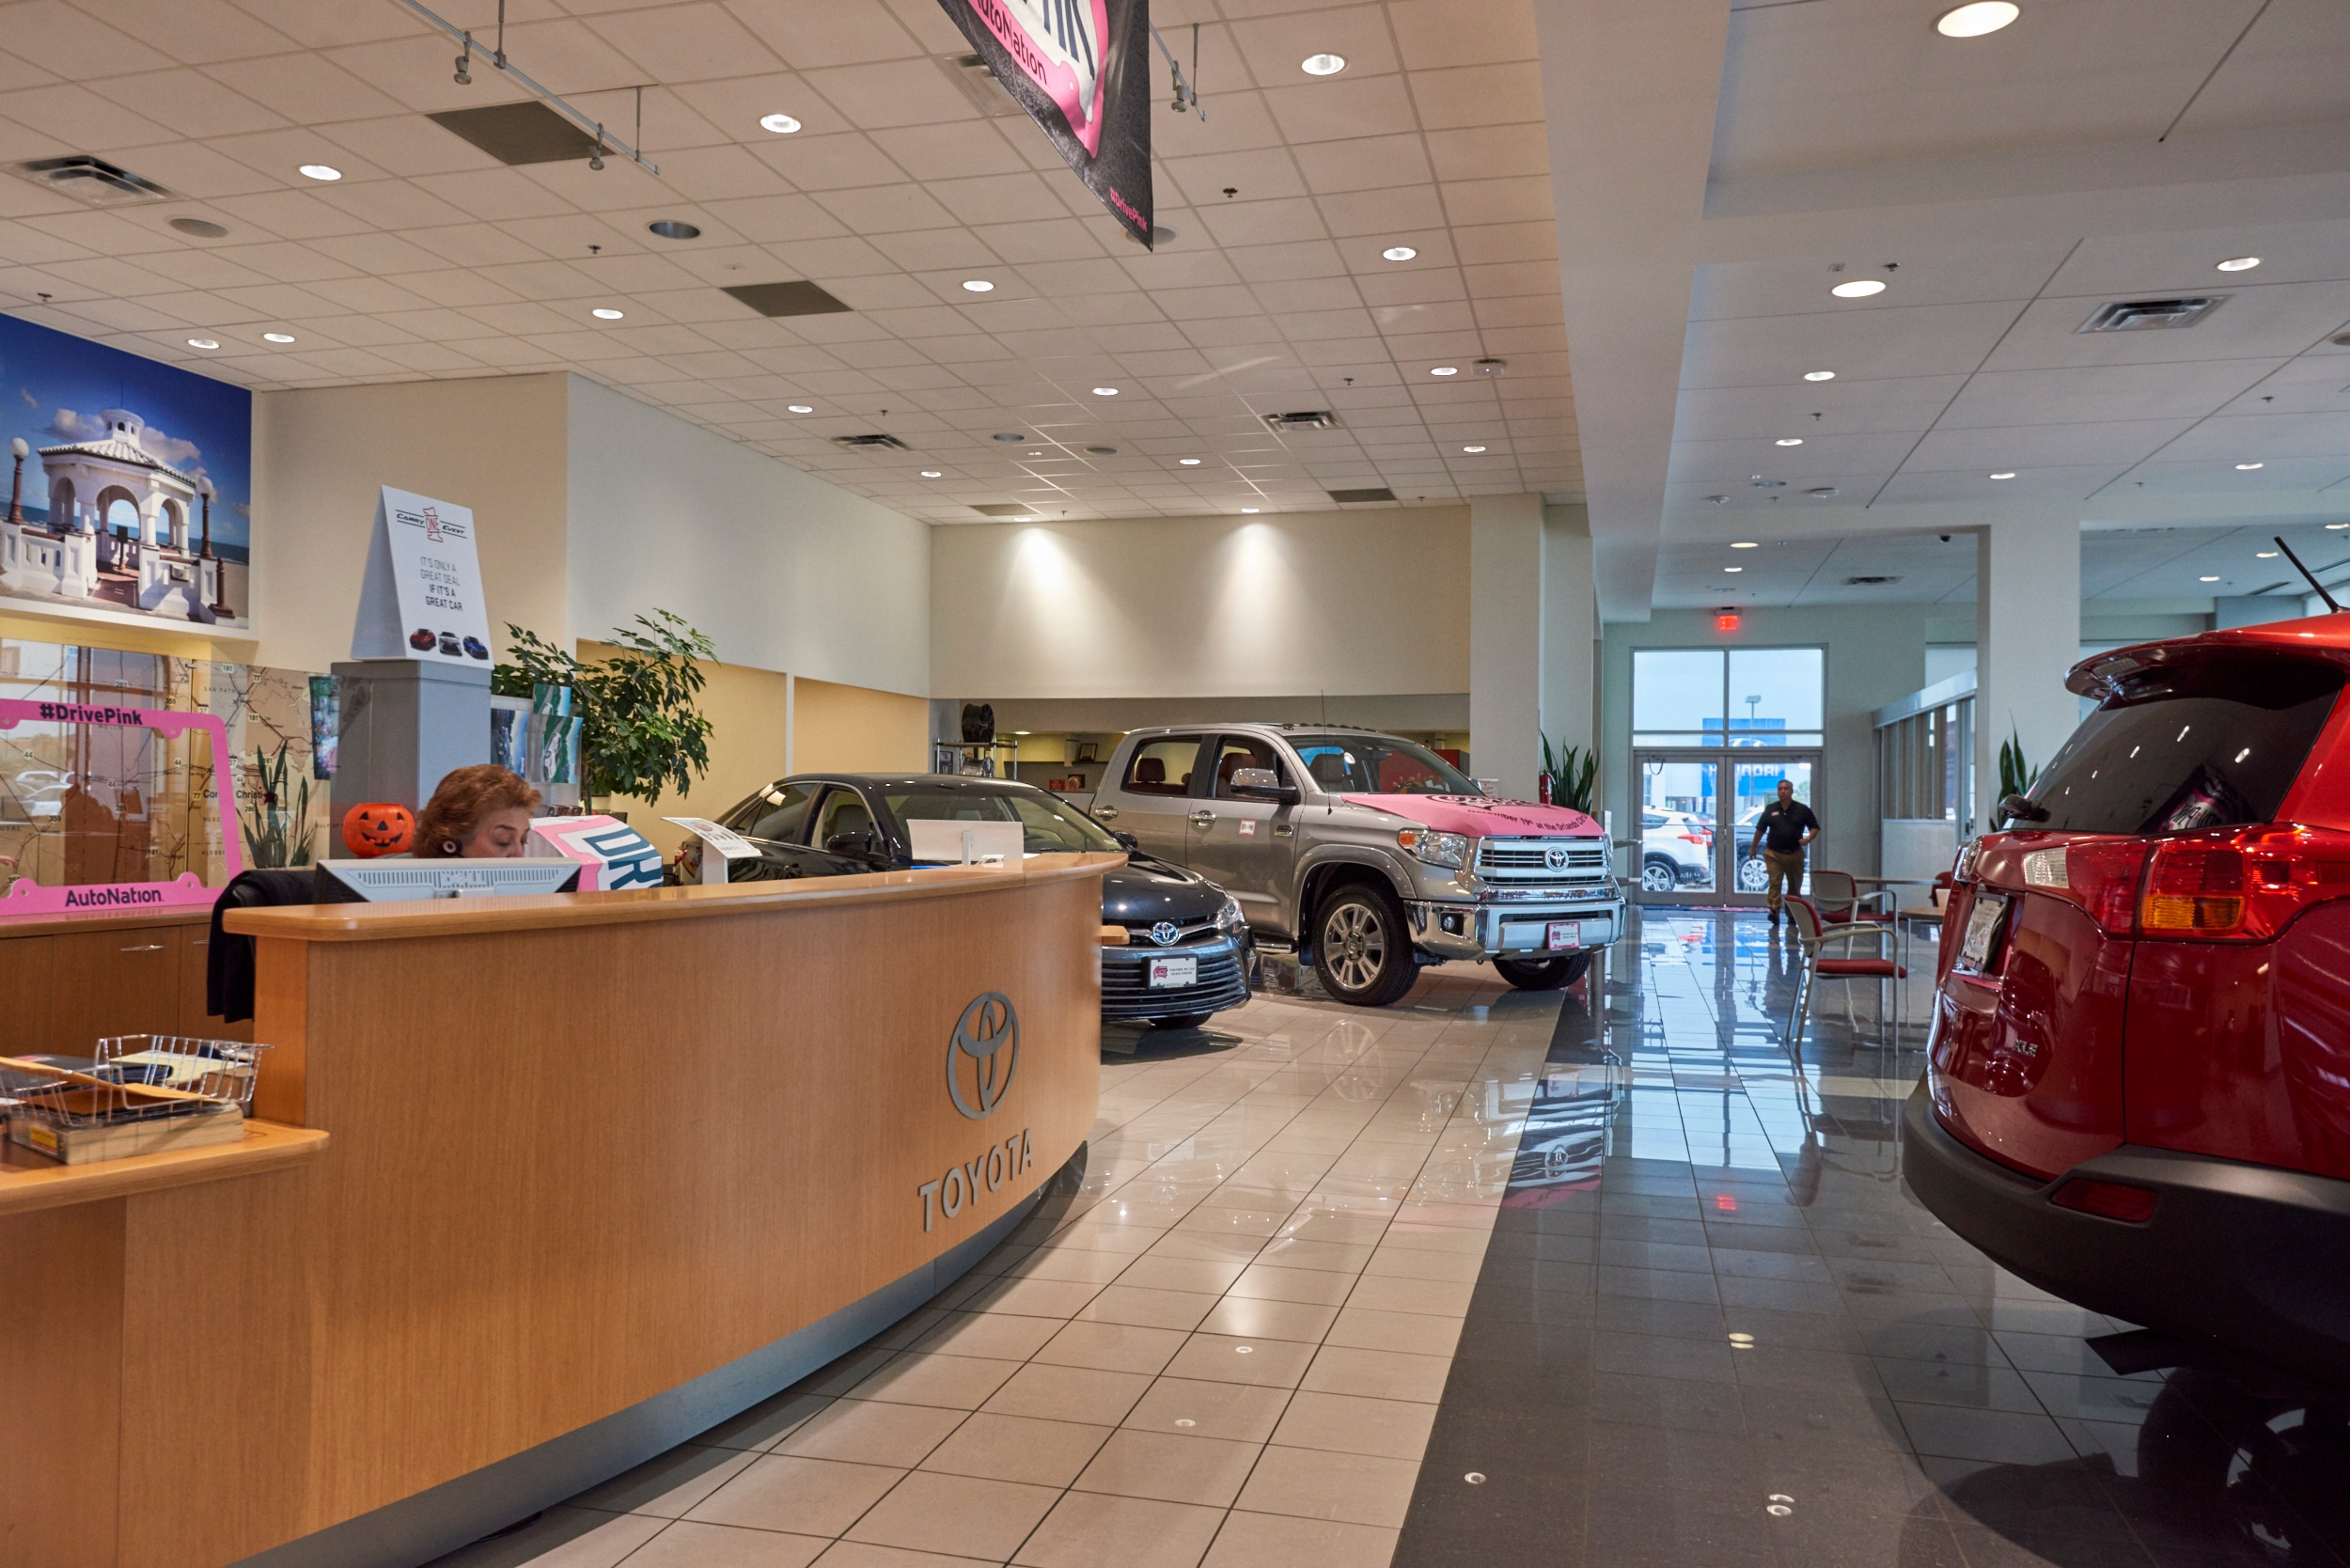 uebelhor top toyota view dealer receives team motor for award larger sales from click